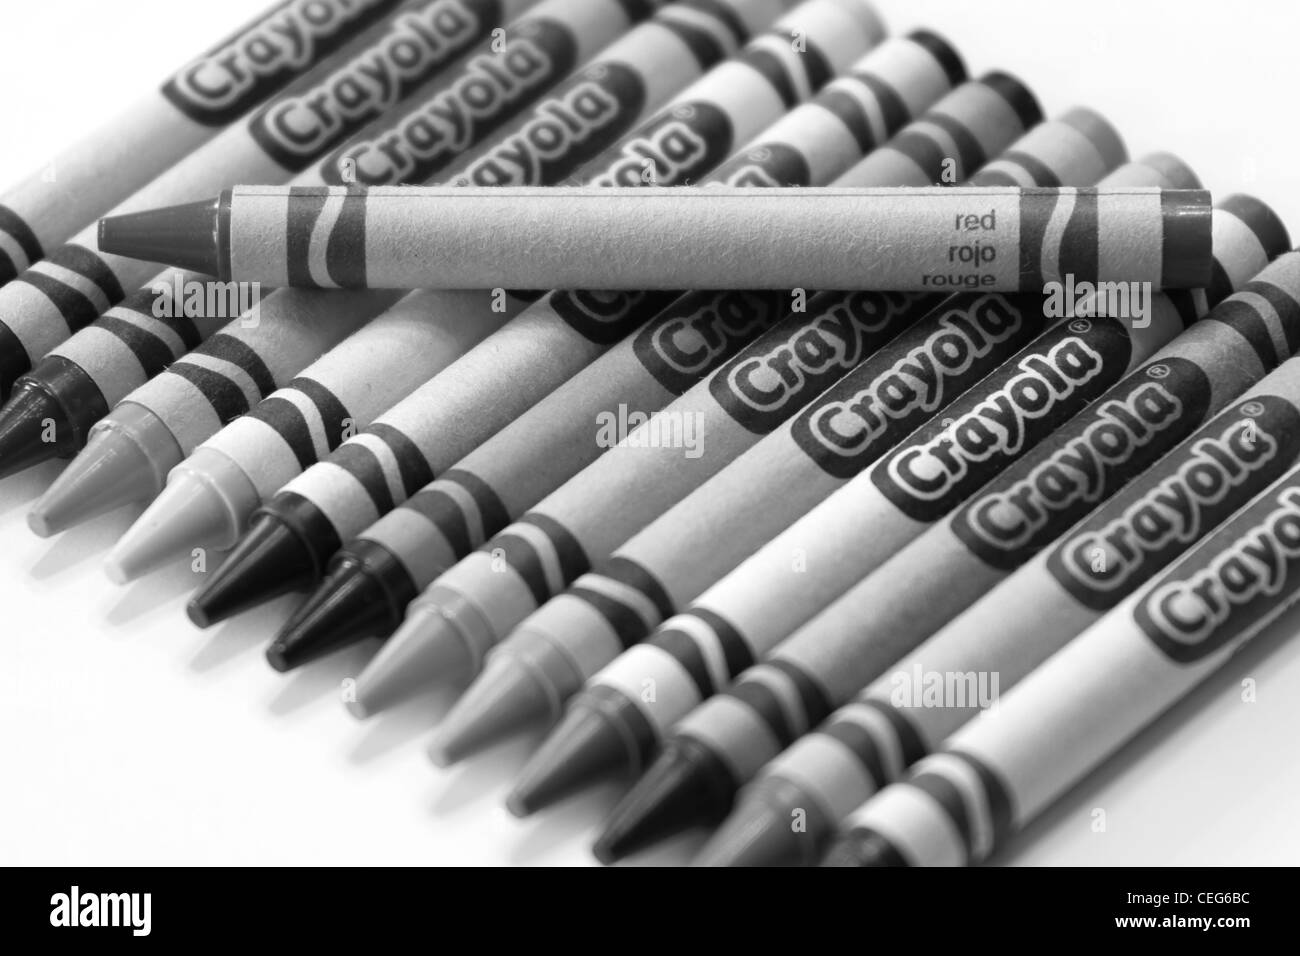 Crayola Crayon Stock Photos & Crayola Crayon Stock Images - Alamy